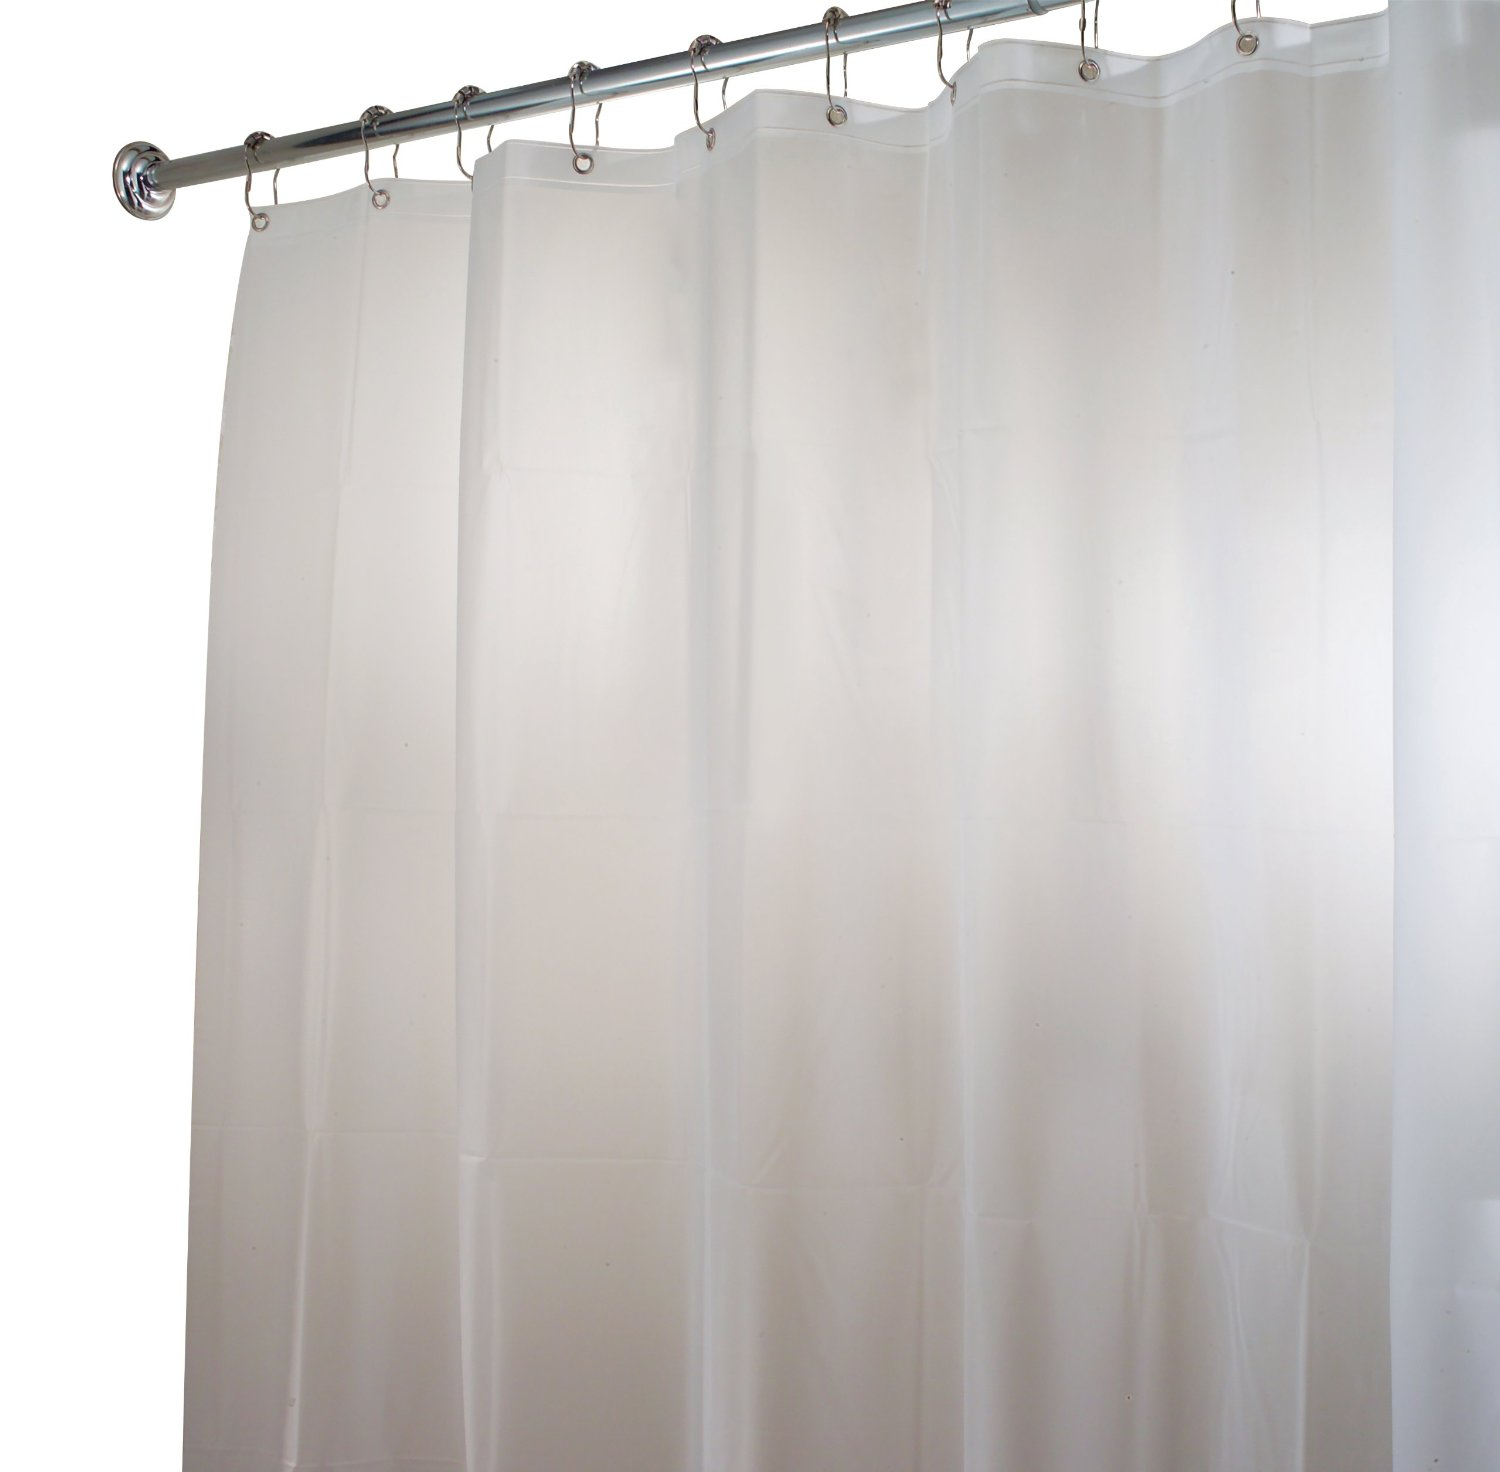 Clawfoot Tub Shower Curtain | Clawfoot Tub Shower Liner | Clawfoot Tub Shower Curtain Solution